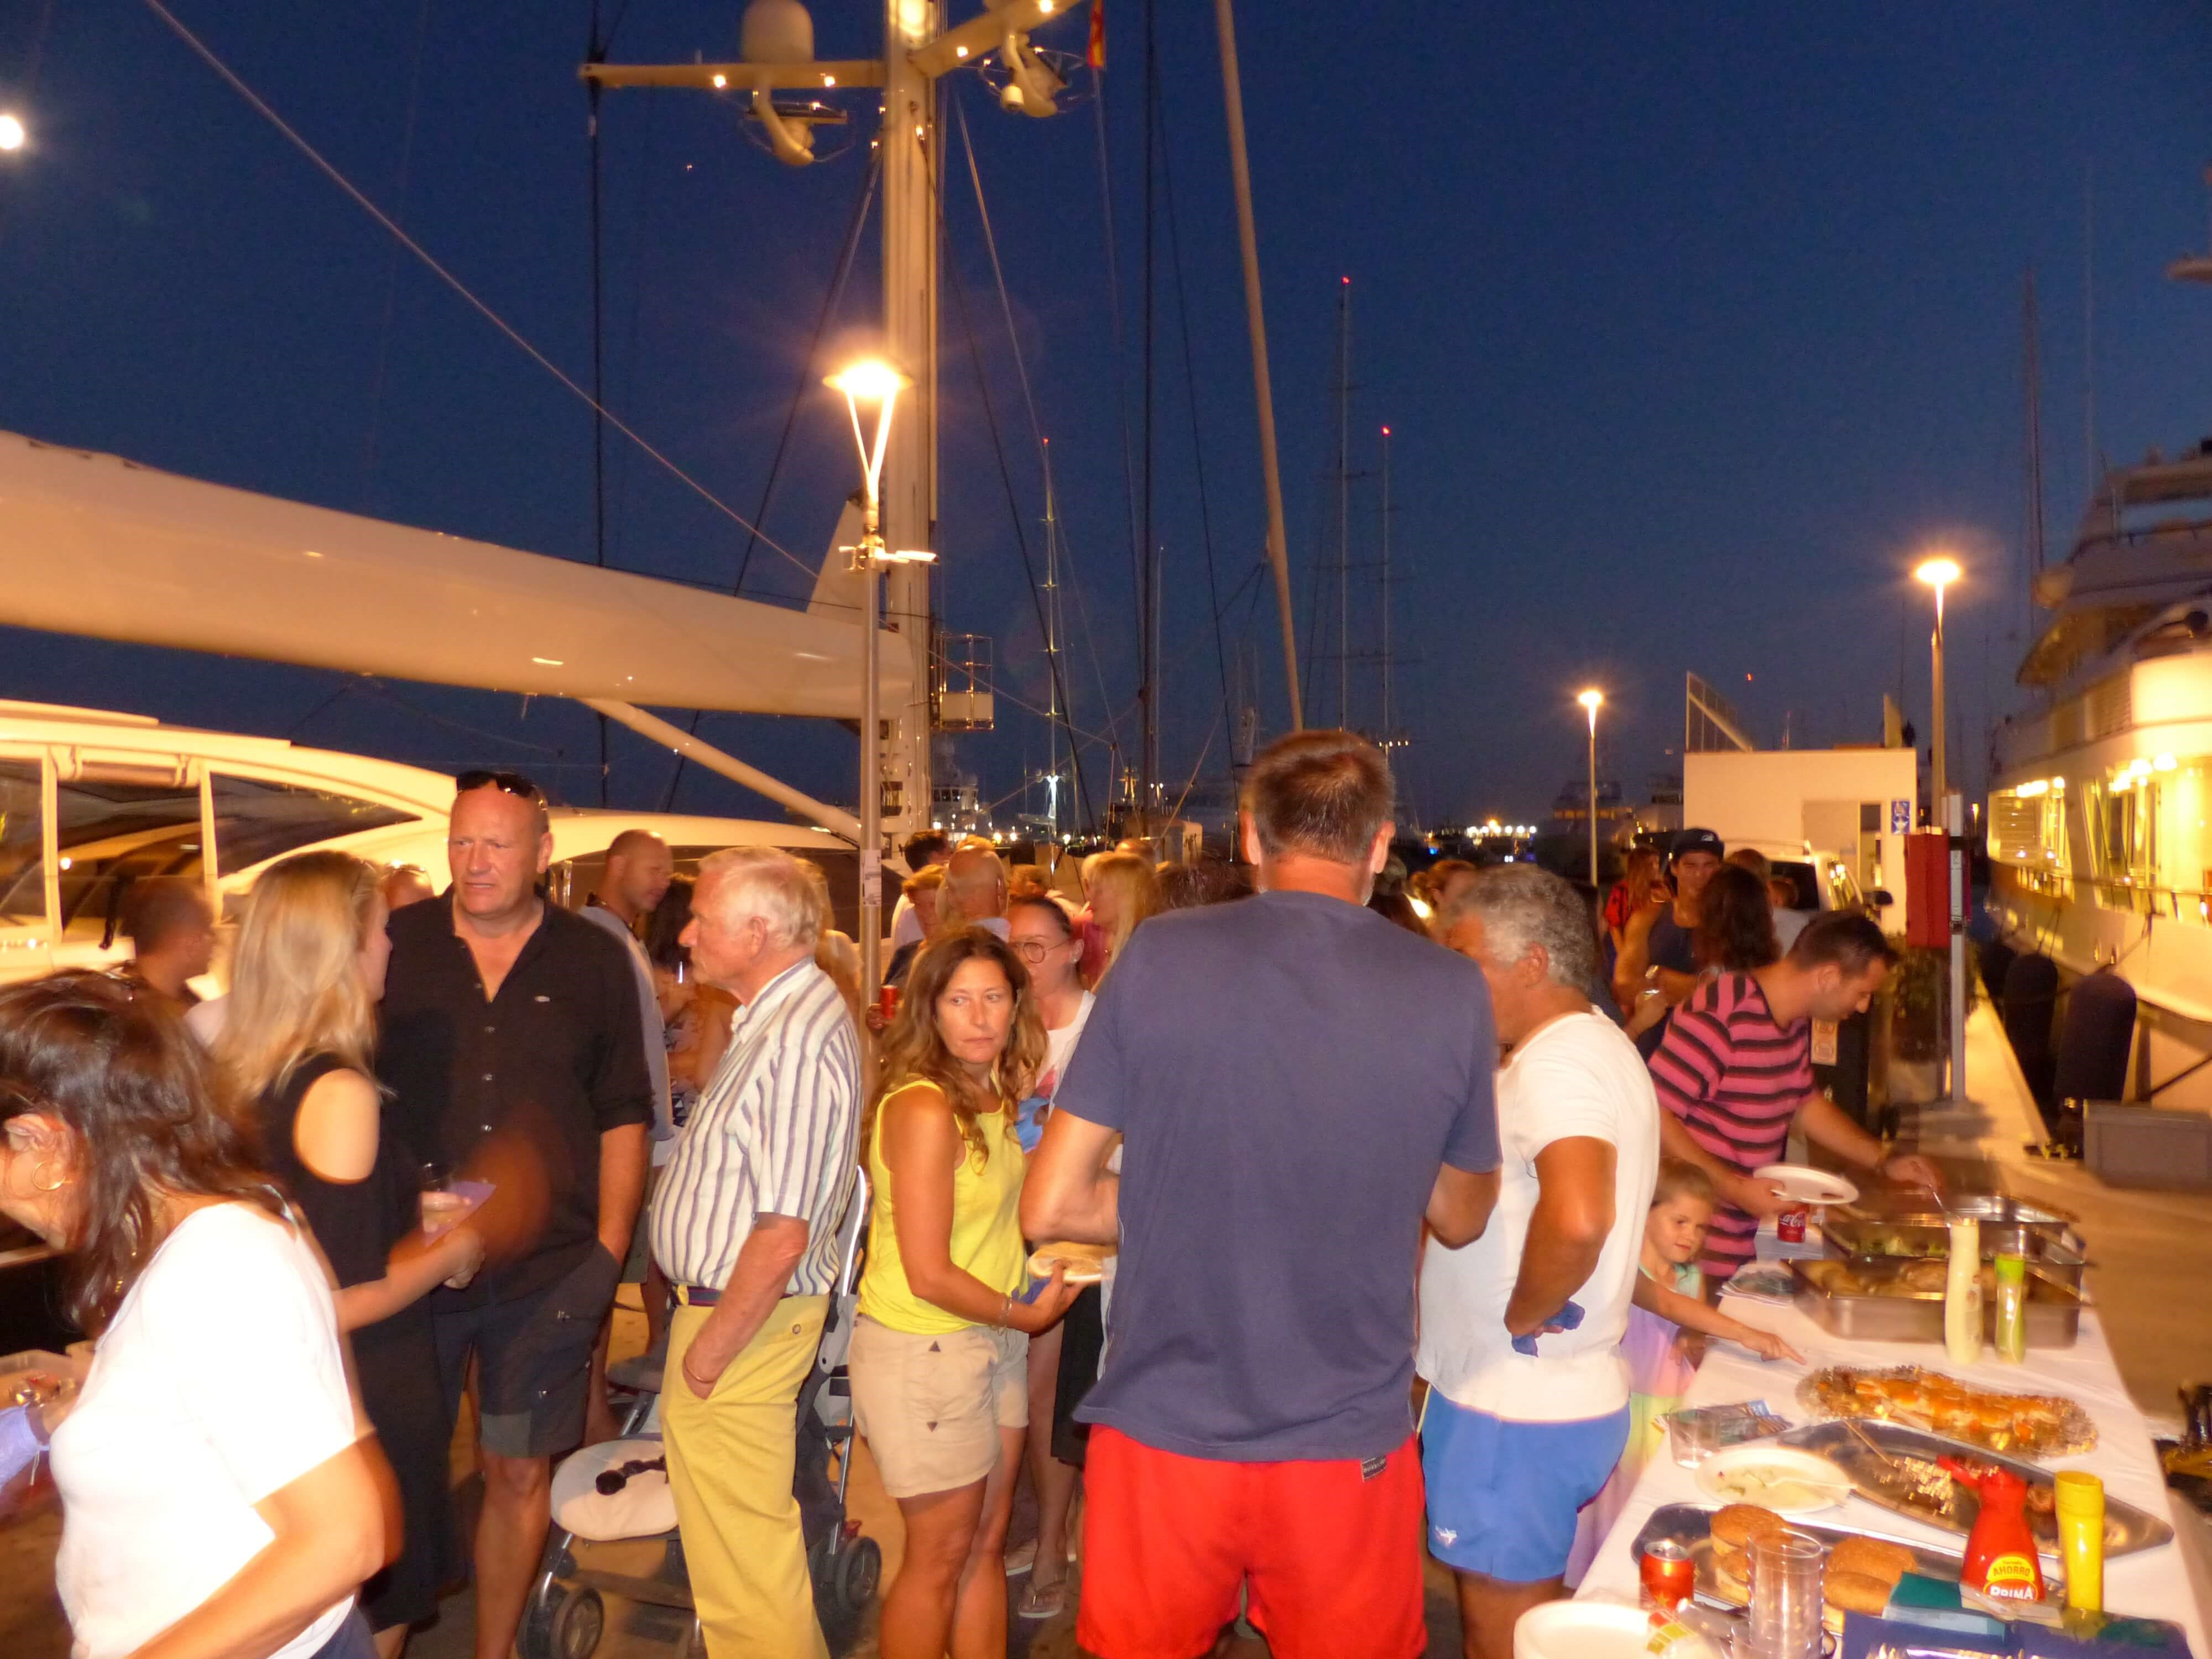 Marina Palma Cuarentena organizes a barbecue with environmental awareness